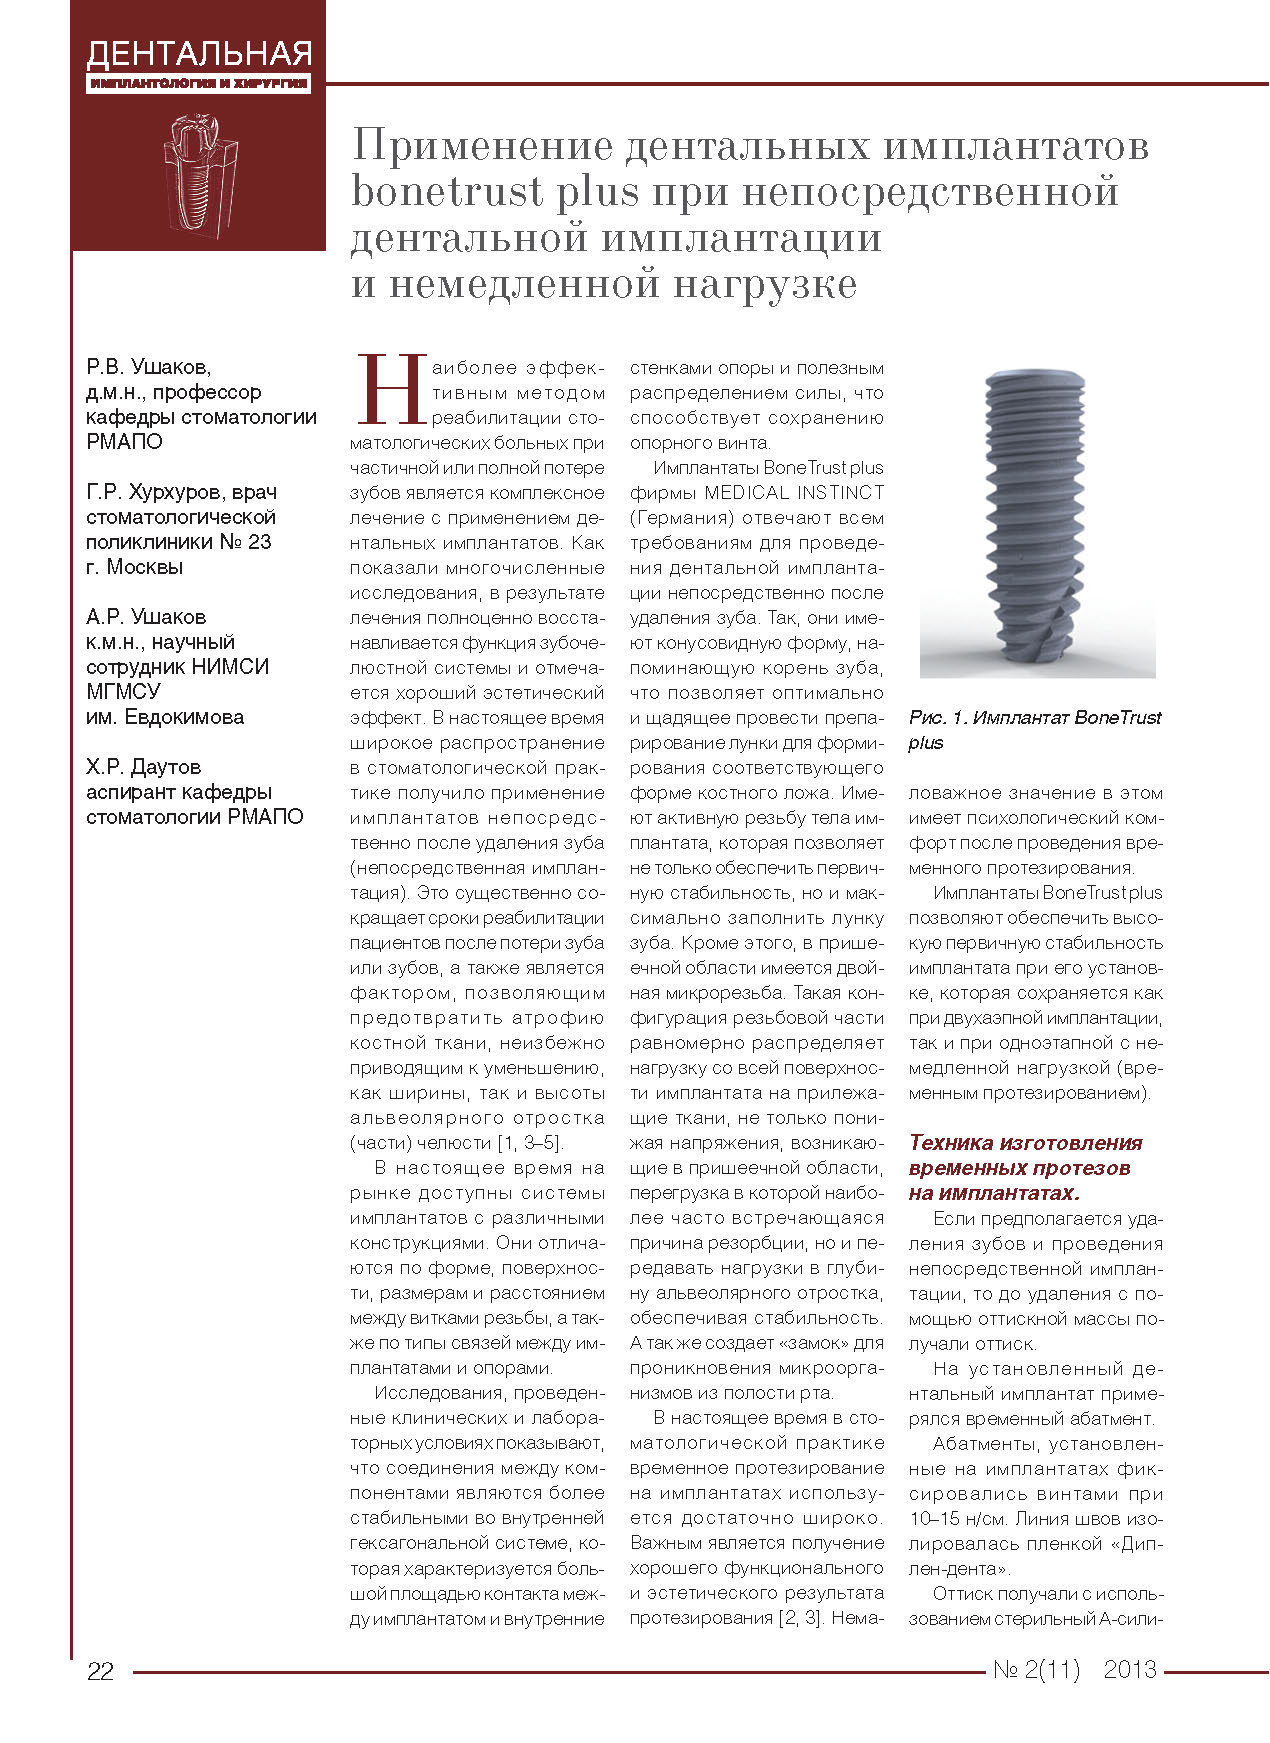 Implantatsysteme BoneTrust Plus – Russisch 01 2013